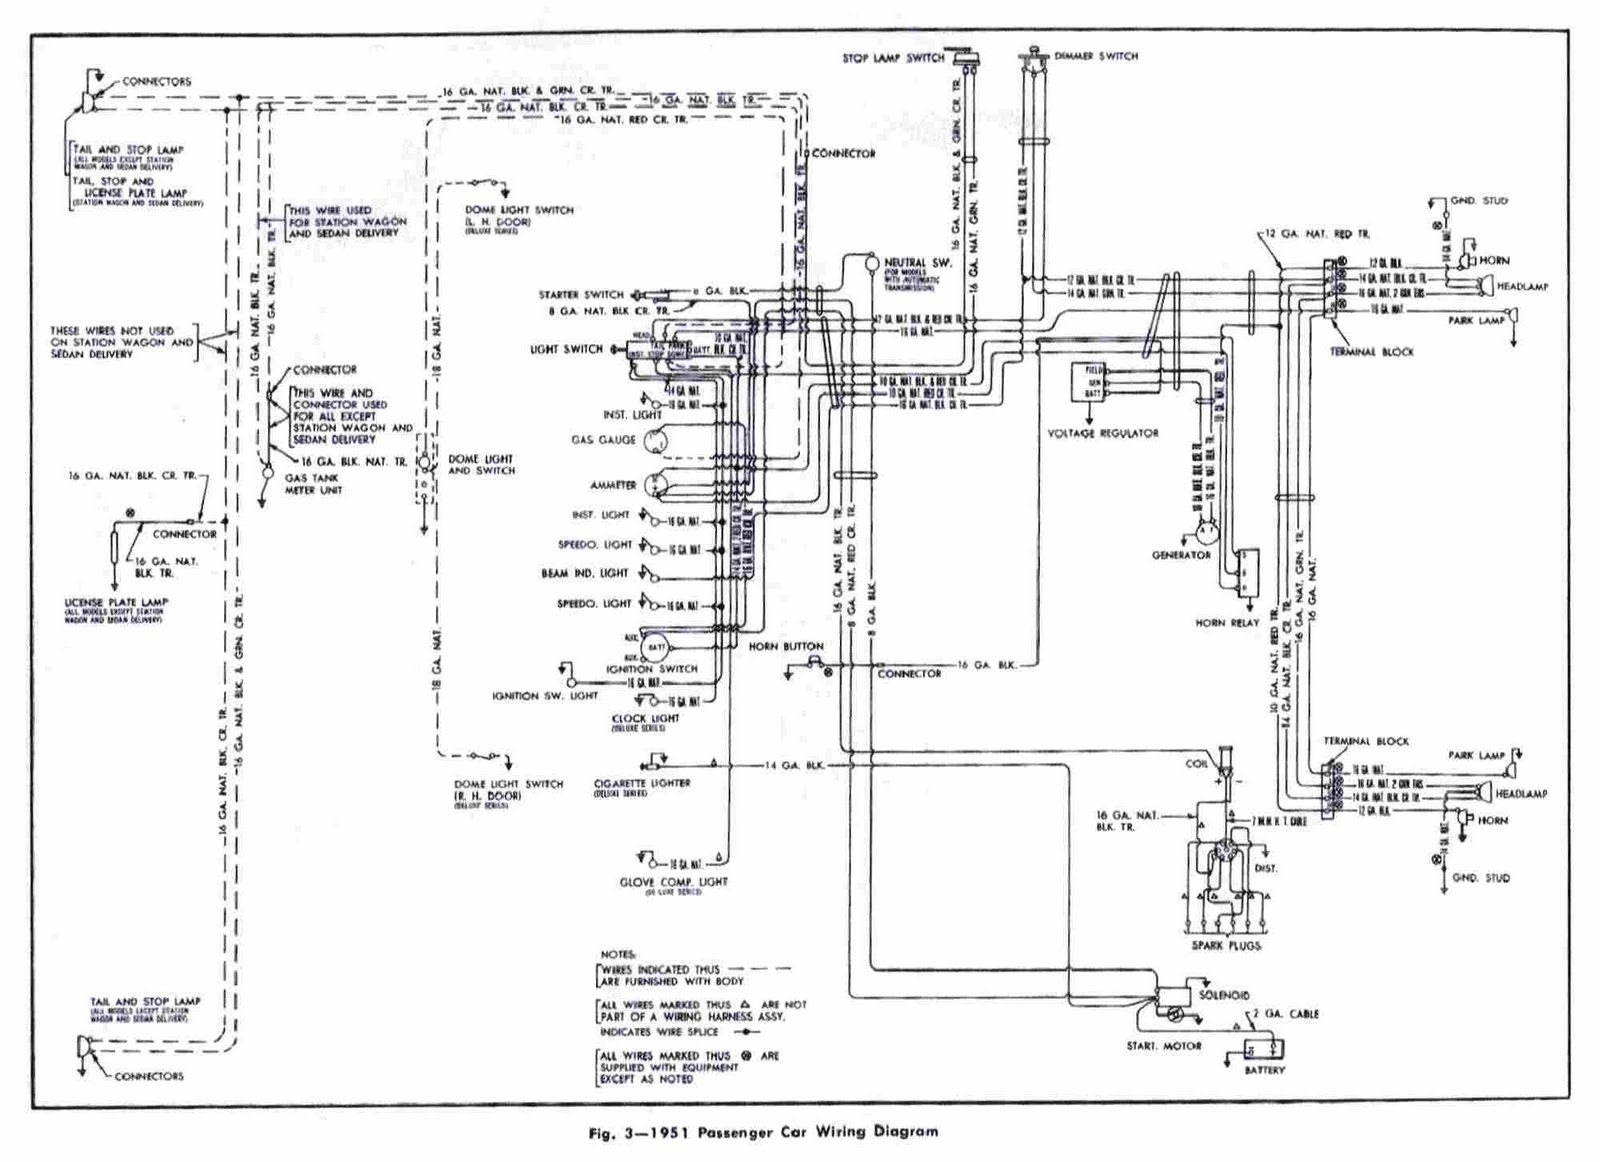 1972 corvette starter wiring diagram